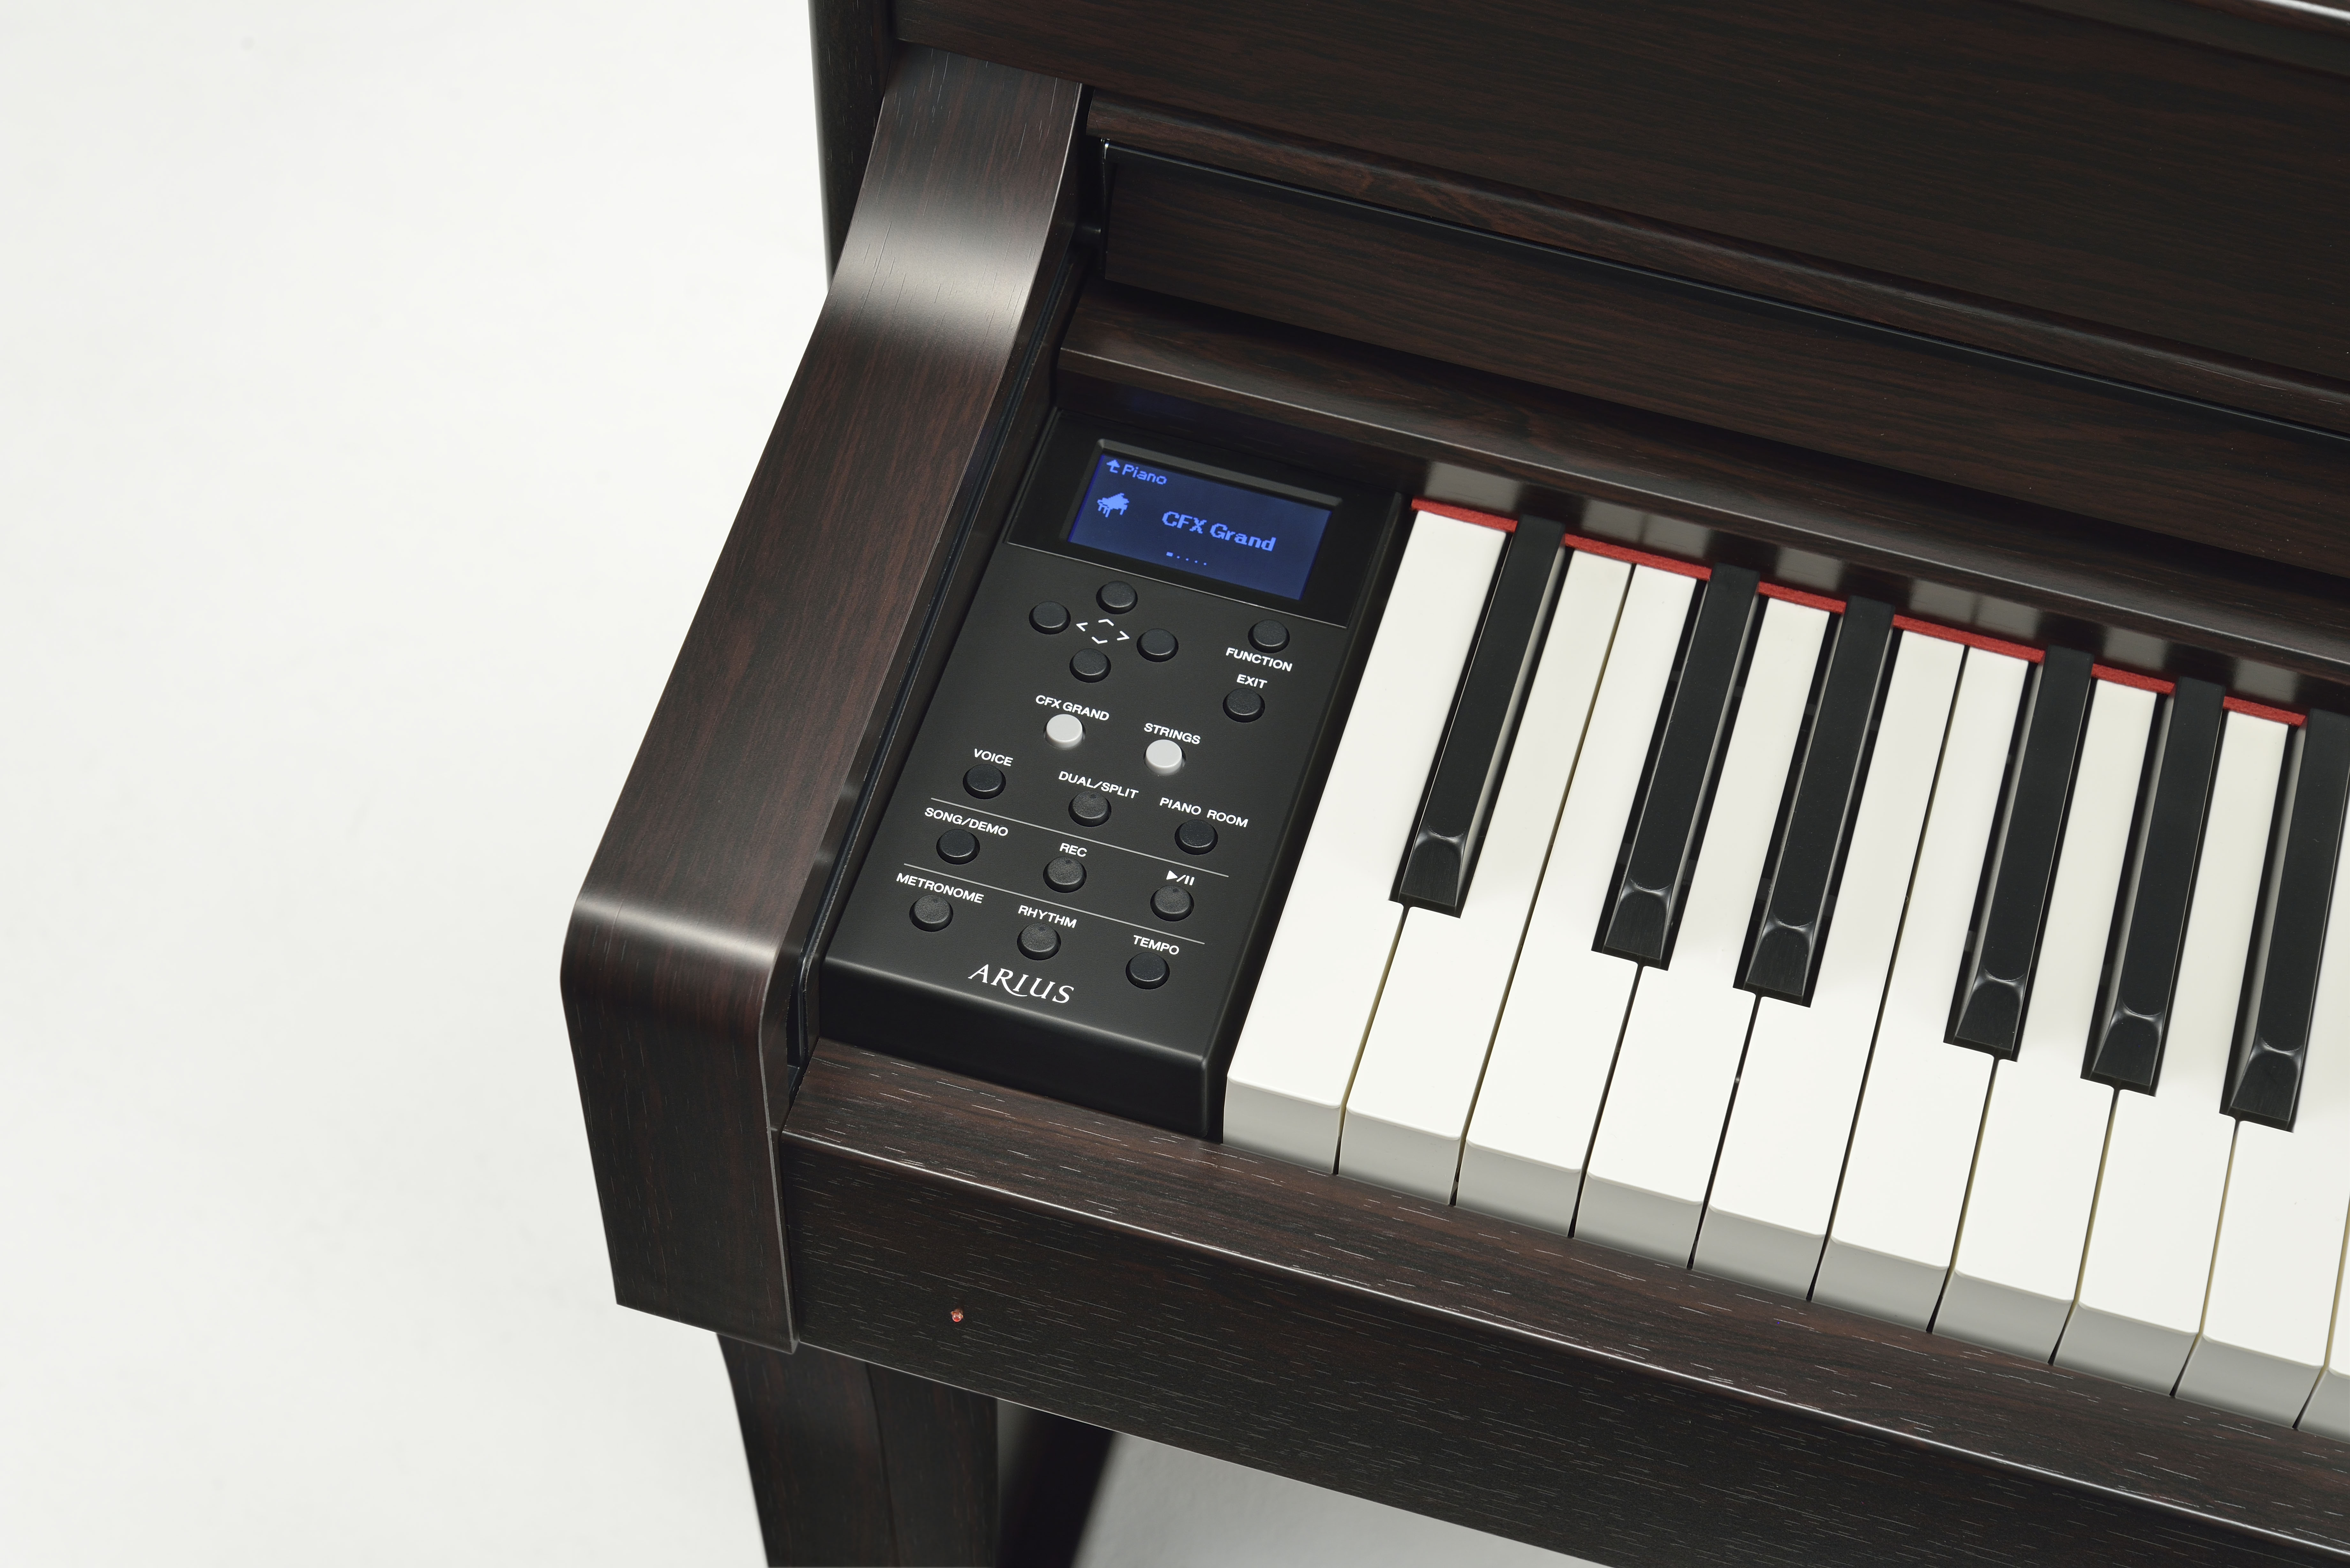 Yamaha adds two new models to its arius digital piano line for Yamaha keyboard models